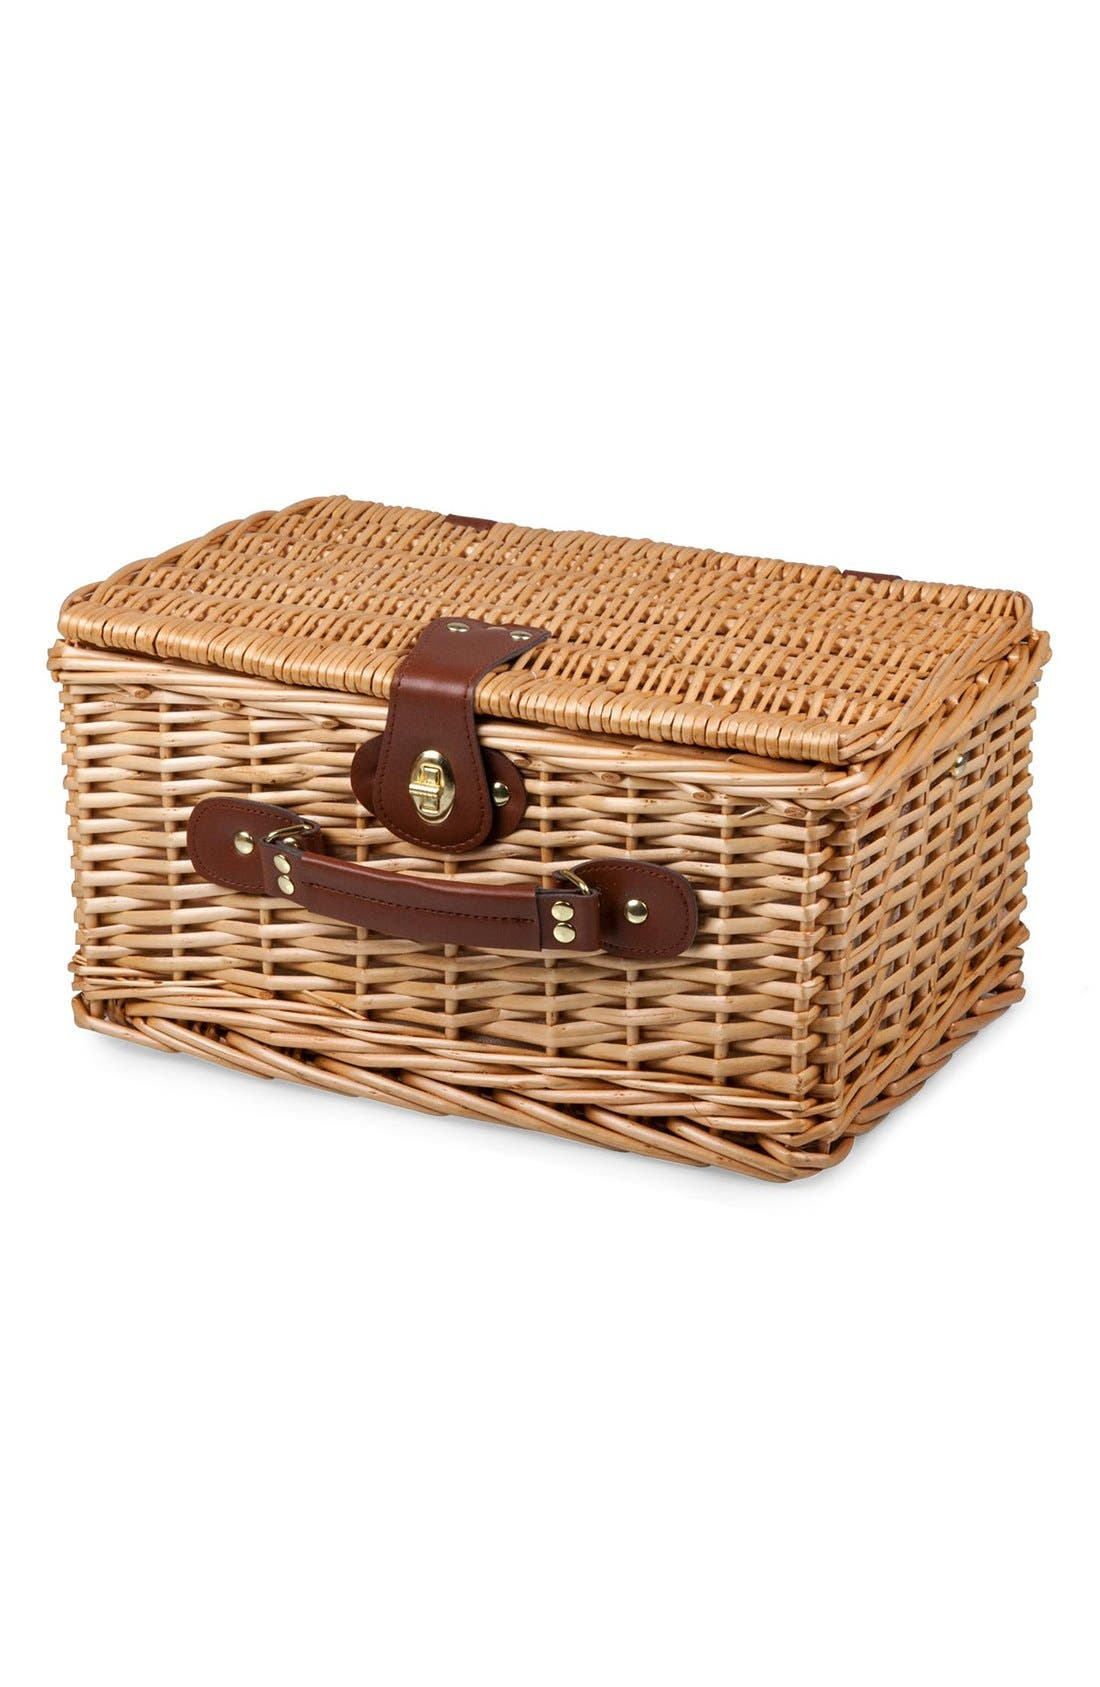 'Catalina' Wicker Picnic Basket,                             Alternate thumbnail 2, color,                             Red